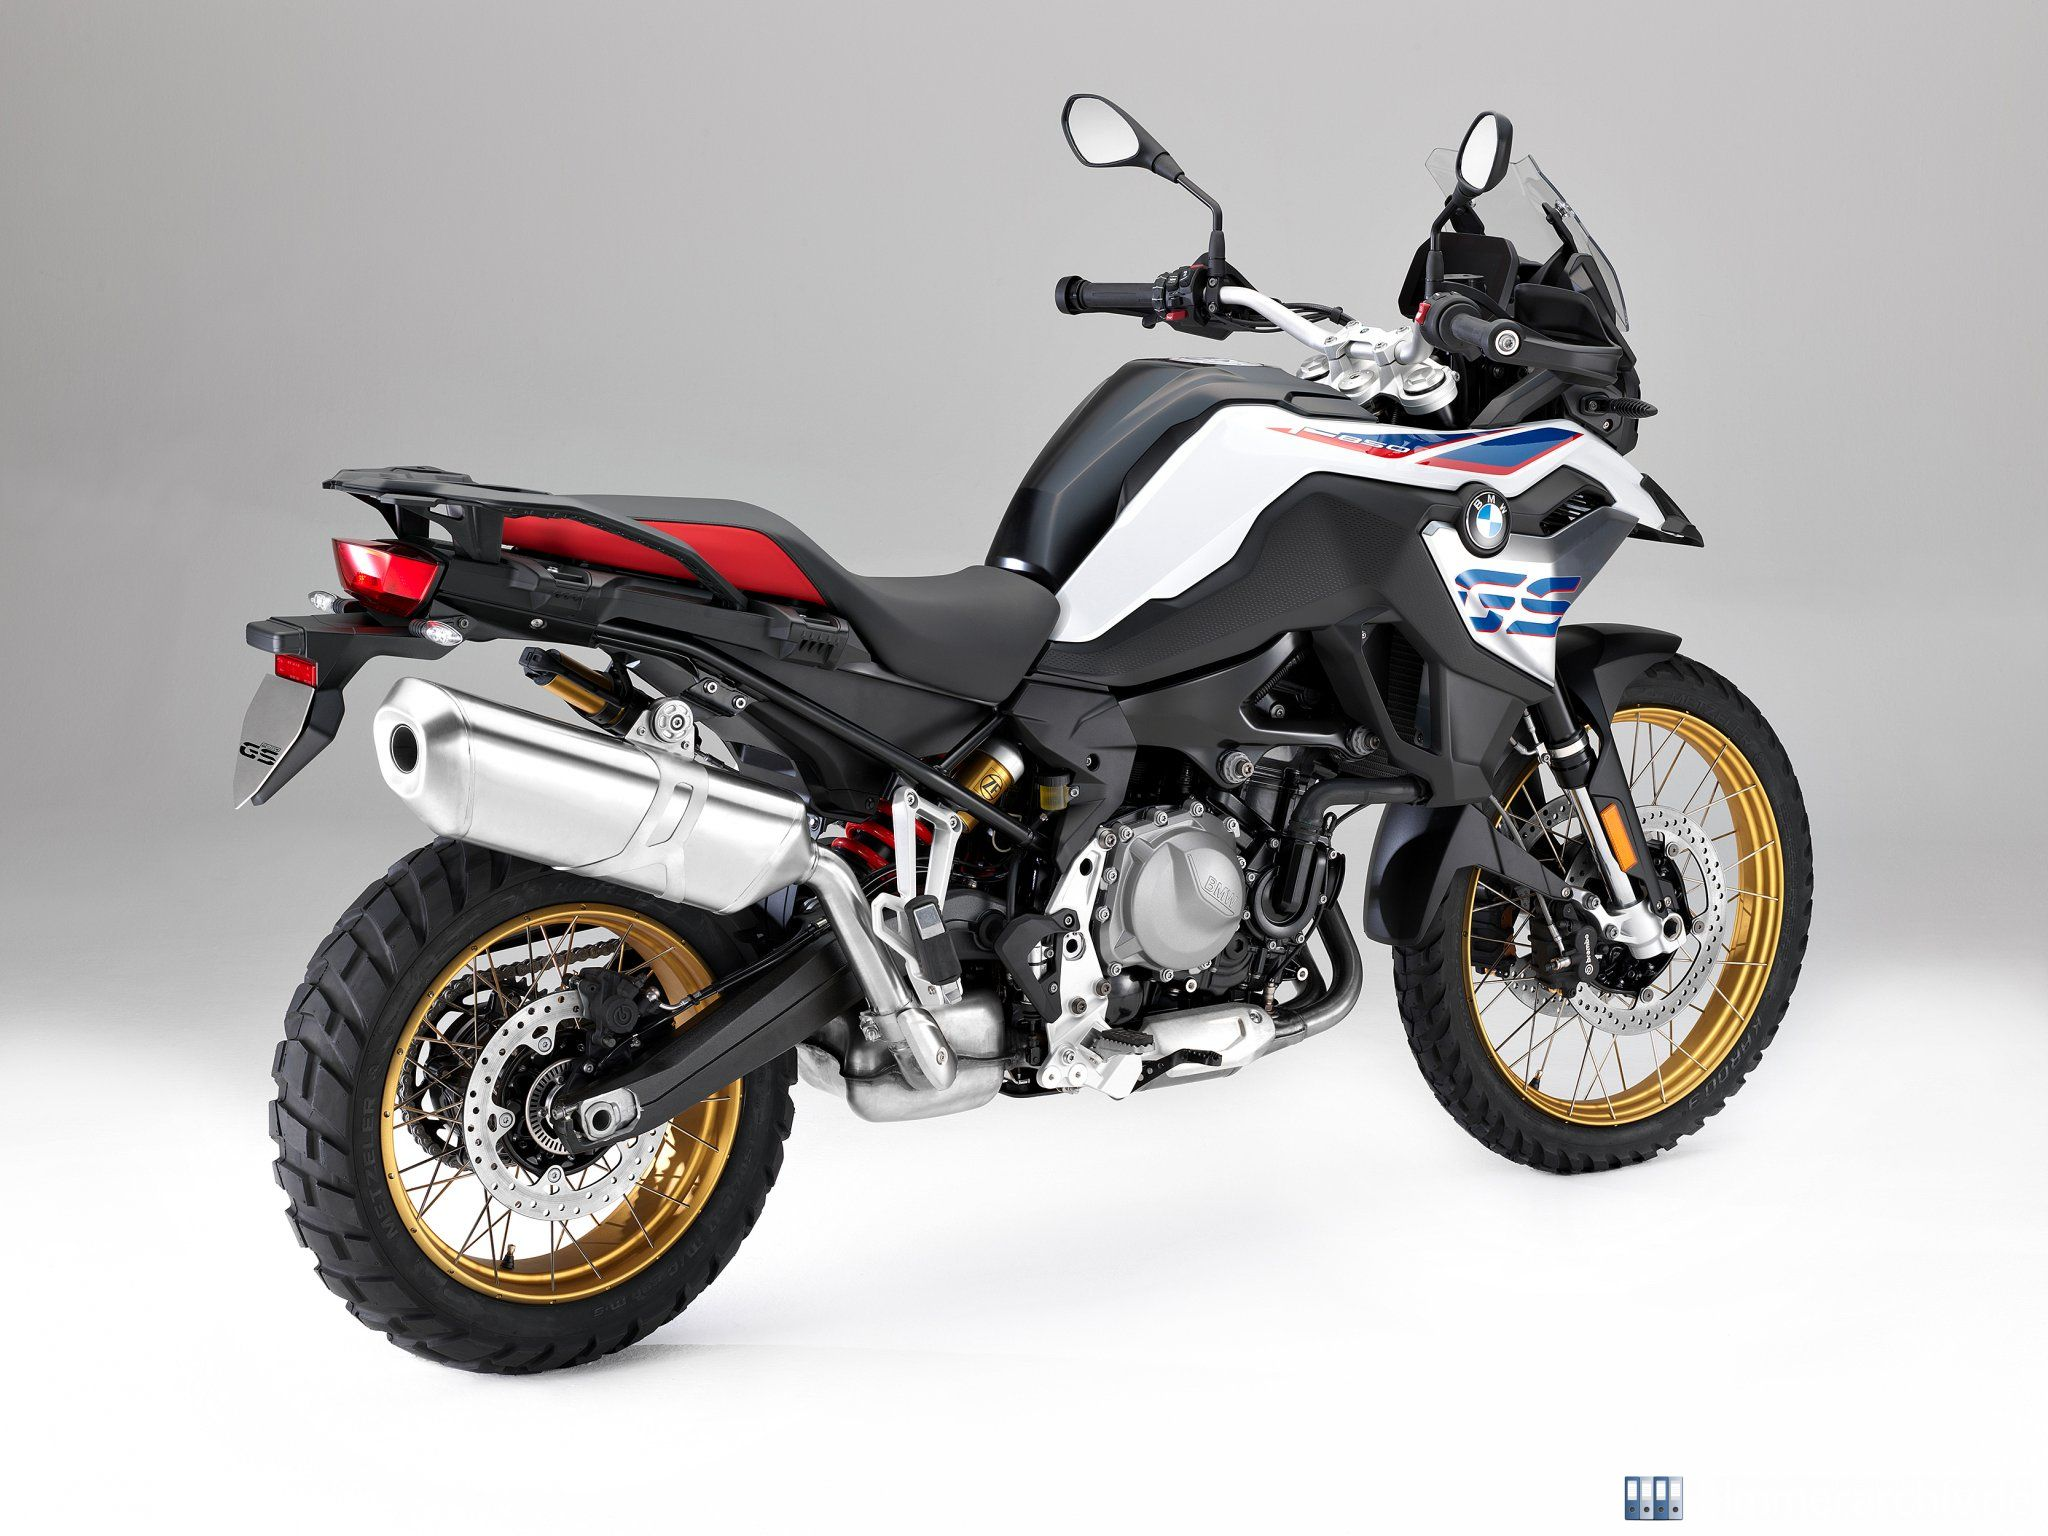 Model Archive for BMW models · BMW F 850 GS · bmwarchive.org